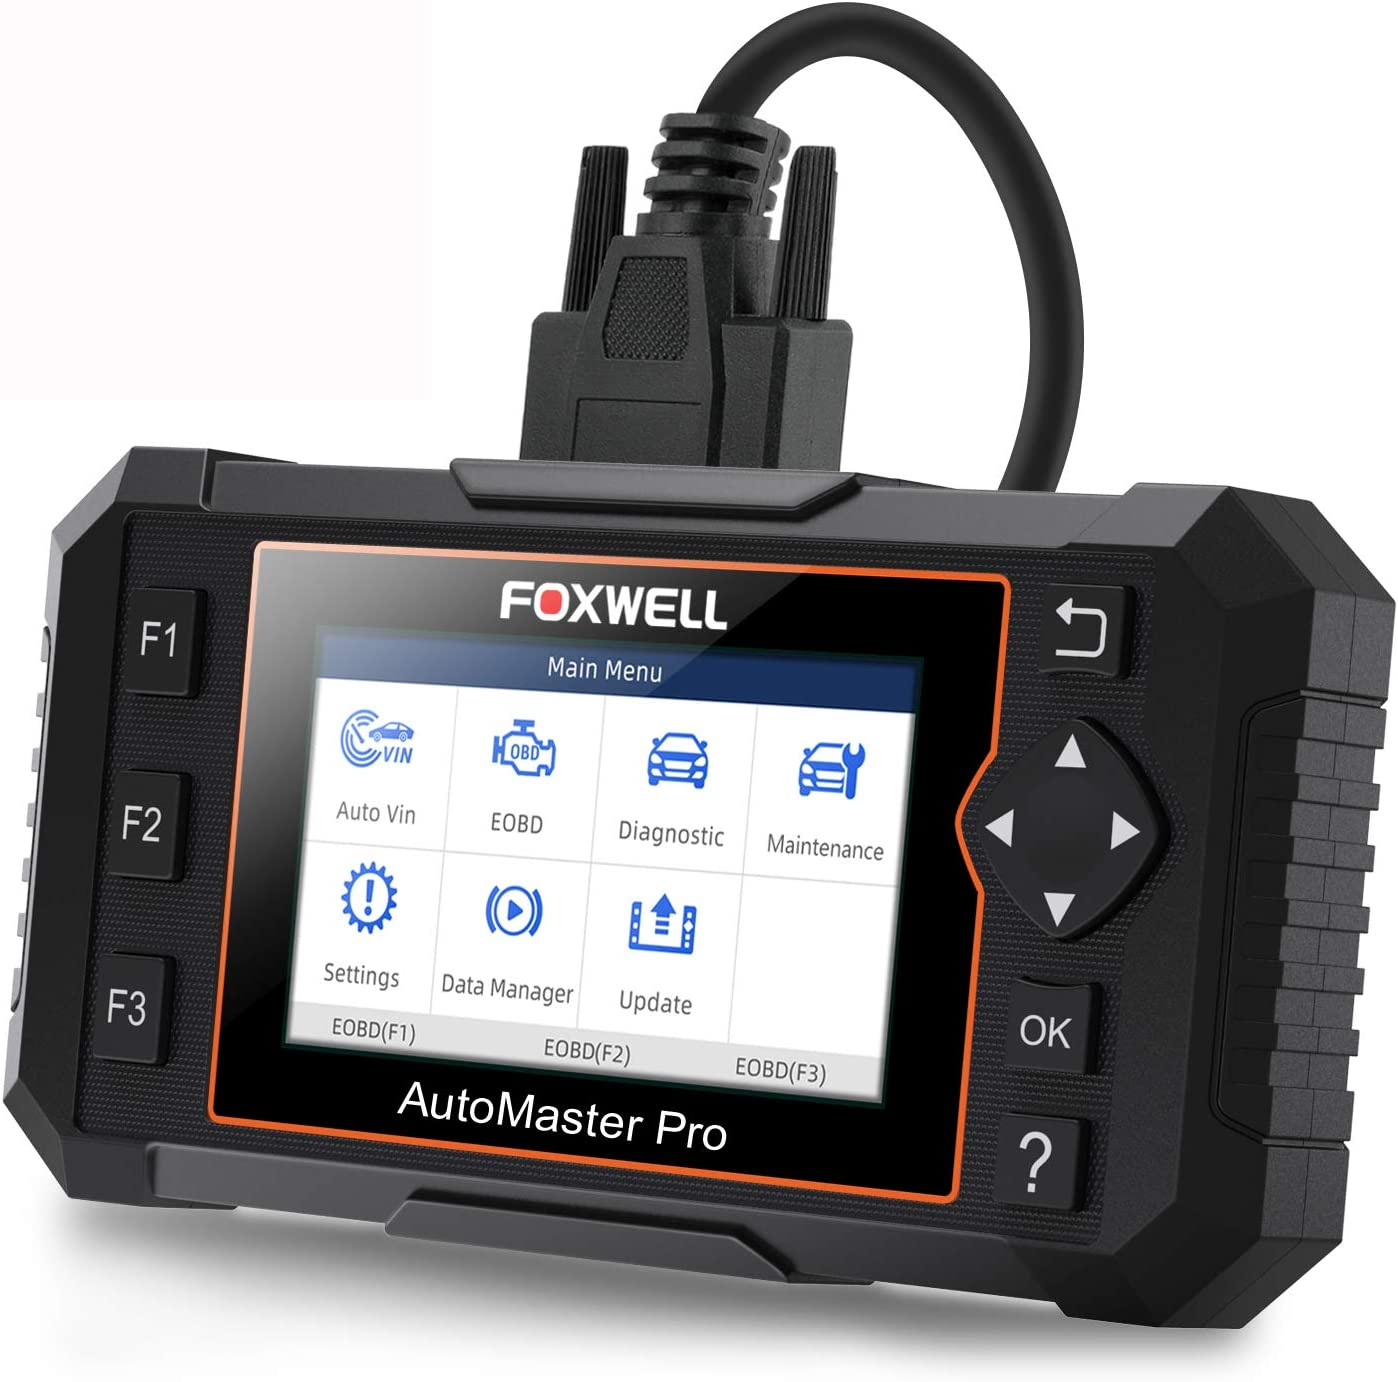 FOXWELL NT624 Elite Automotive OBD2 Scanner Full-System Car Code Reader Diagnostic Scan Tool with Oil Light Reset and EPB Service Functions (2019 Latest Version)